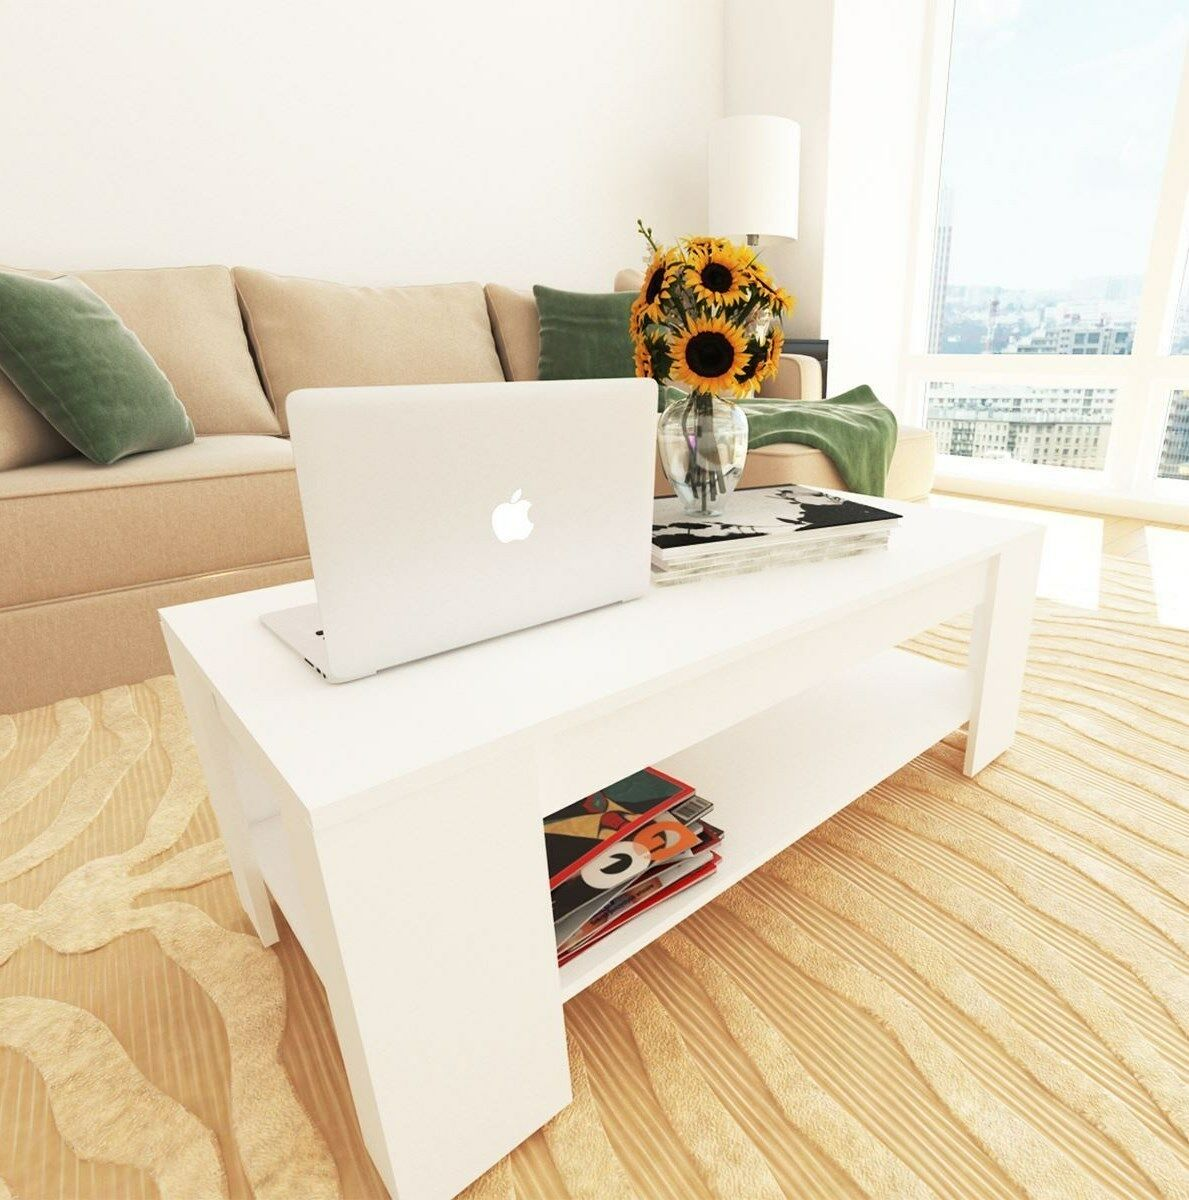 New Caspian White Lift Up Top Coffee Table With Storage Shelf Picclick Uk